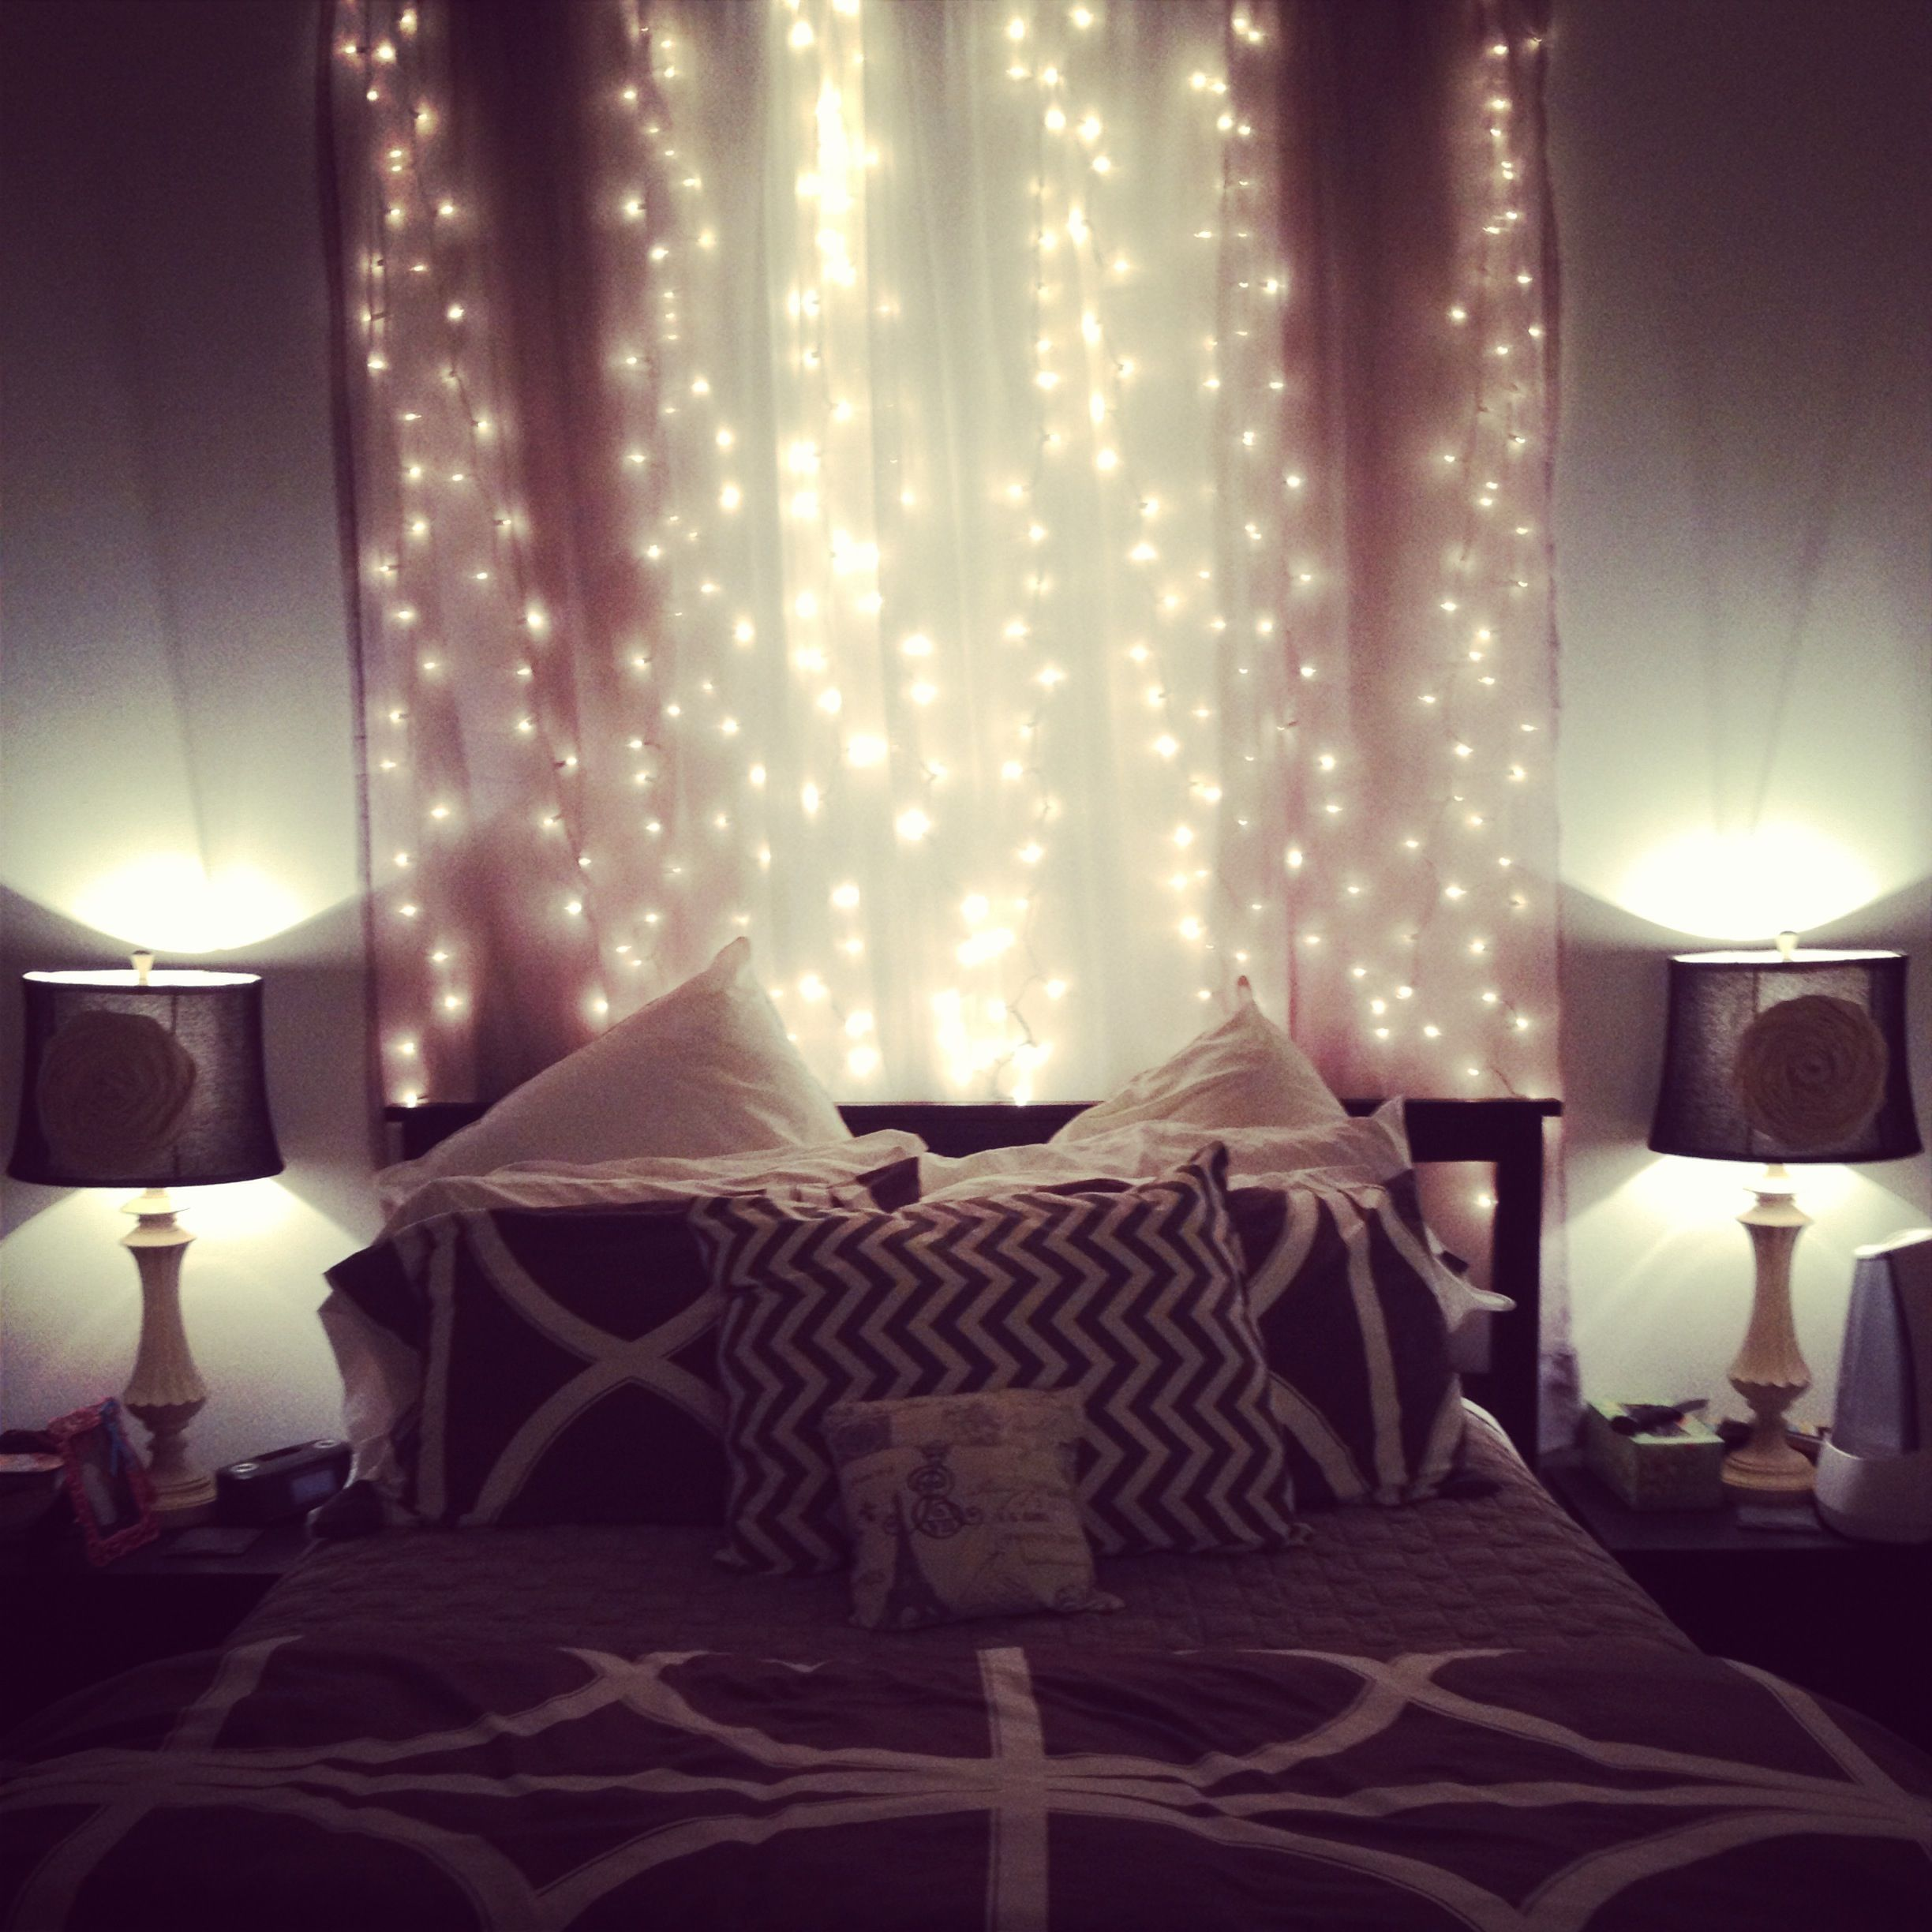 fairy lights in the bedroom bedroom ideas pinterest fairy bedrooms and lights. Black Bedroom Furniture Sets. Home Design Ideas